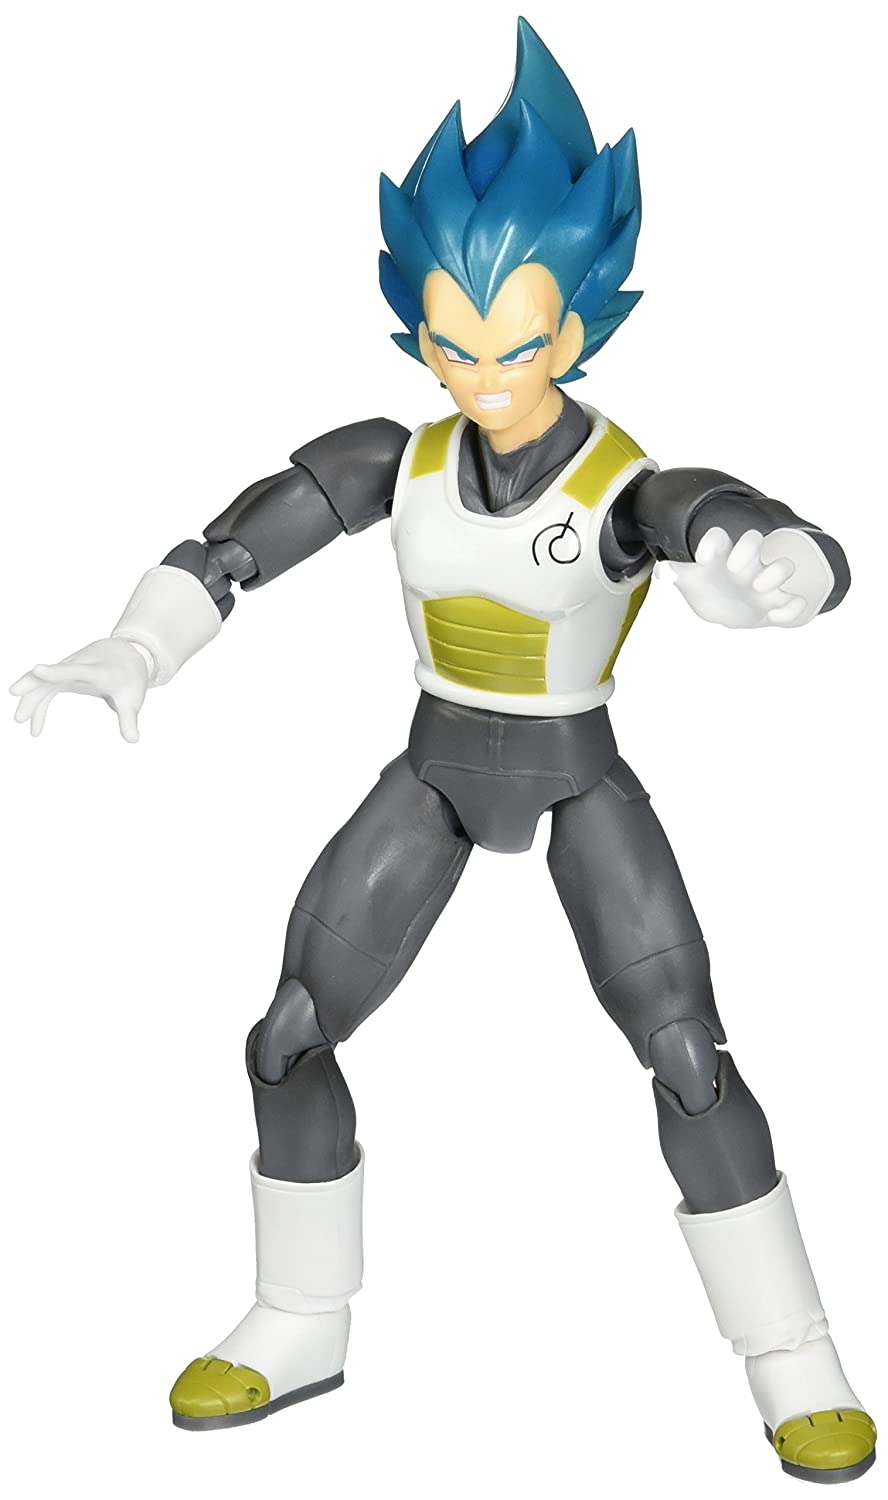 Bandai Tamashii Nations Super Saiyan God Super Saiyan Vegeta